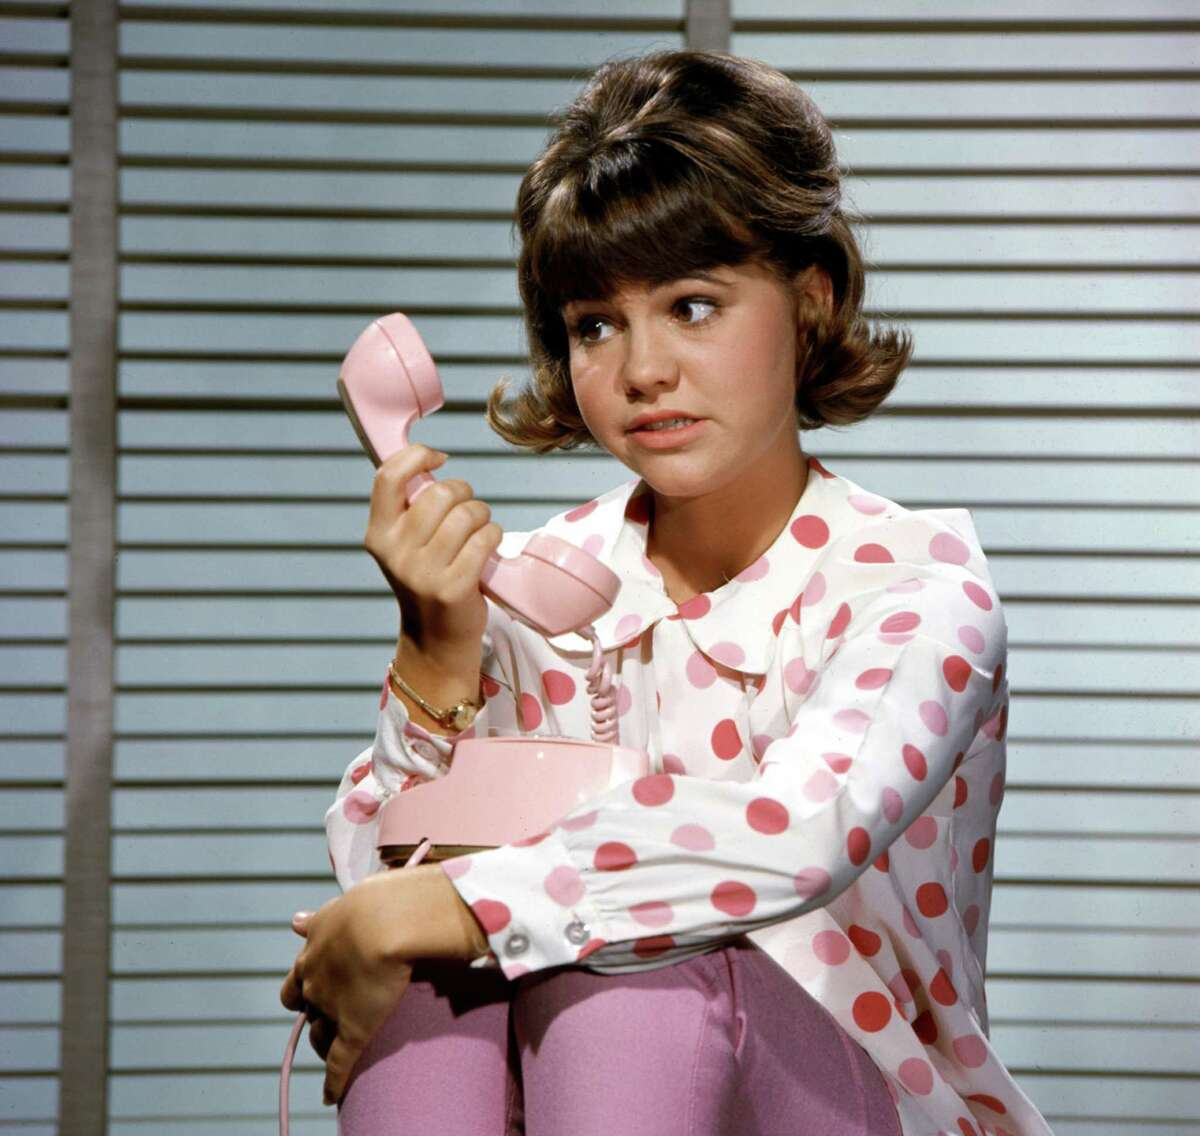 1965: Of course, Gidget had to have a pink Princess telephone, every bit as important to a talkative teenager in its time as an iPhone is now.